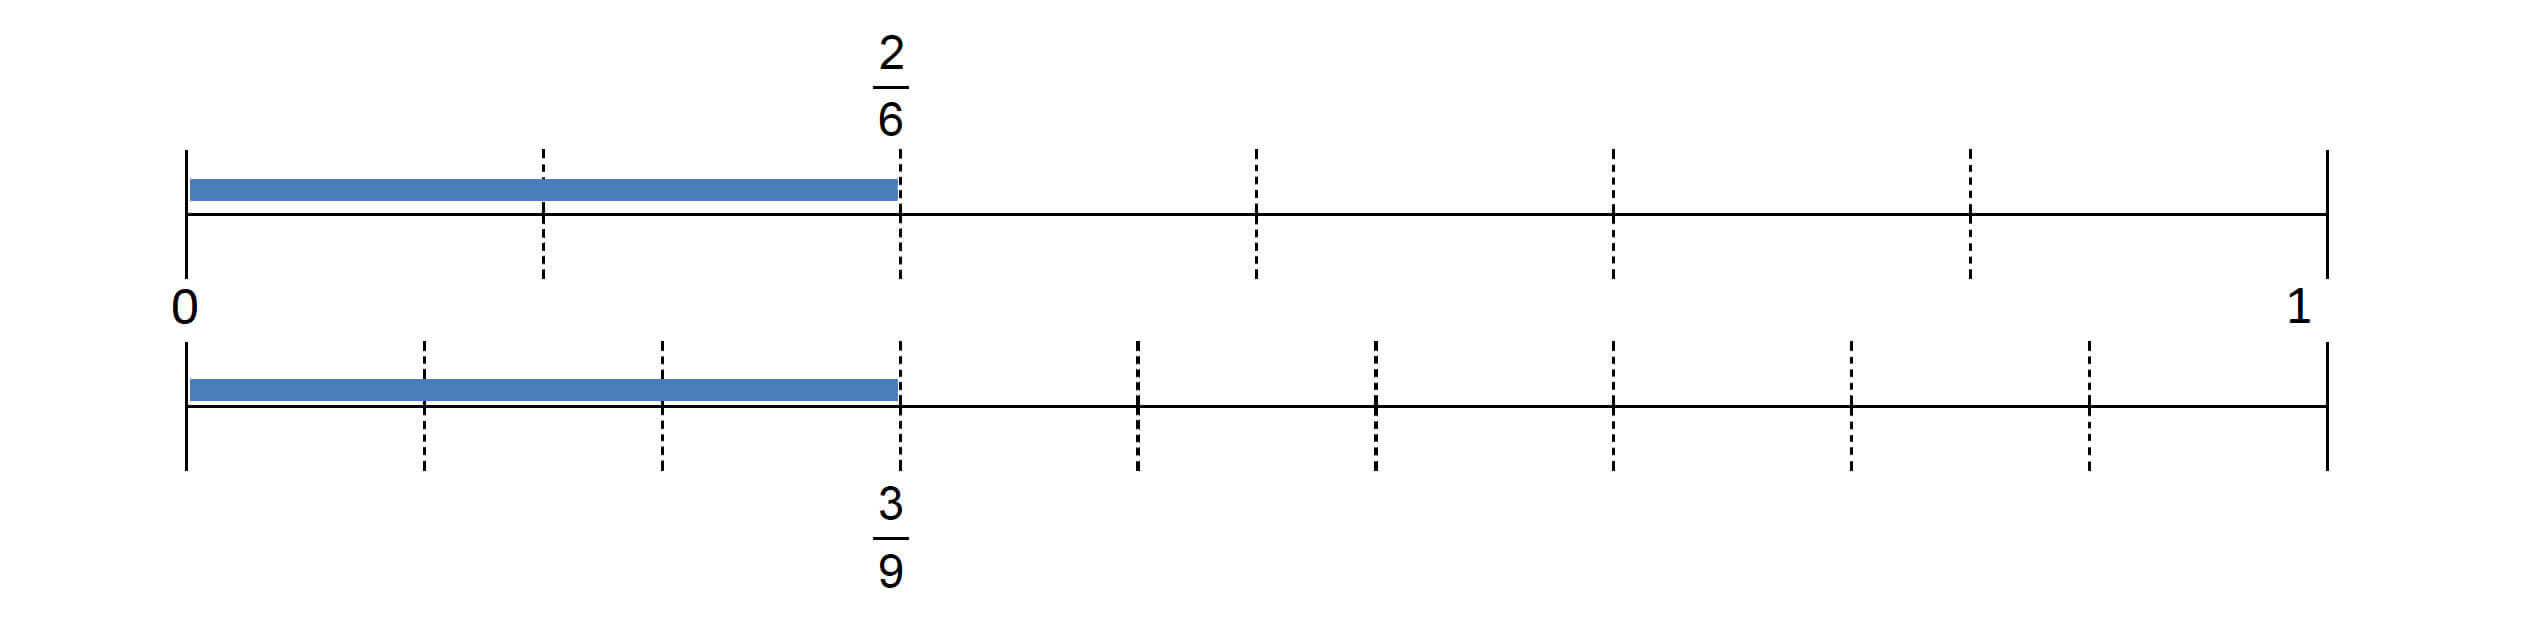 stacked number lines to determine equivalence between 2/6 and 3/9